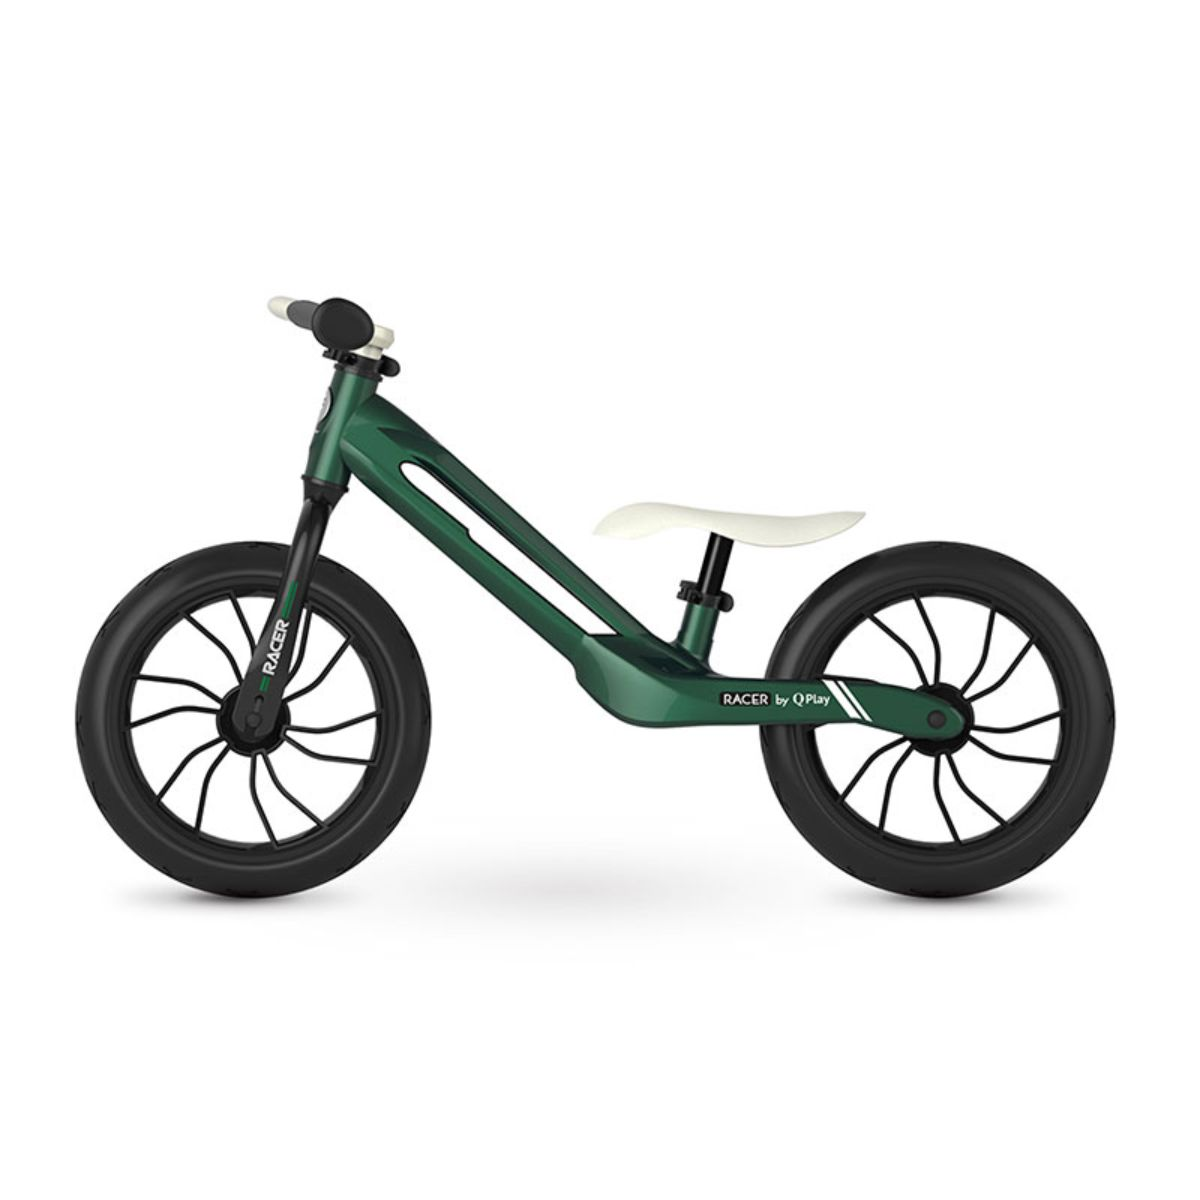 Bicicleta fara pedale DHS Baby Qplay Racer, Verde, 12 inch